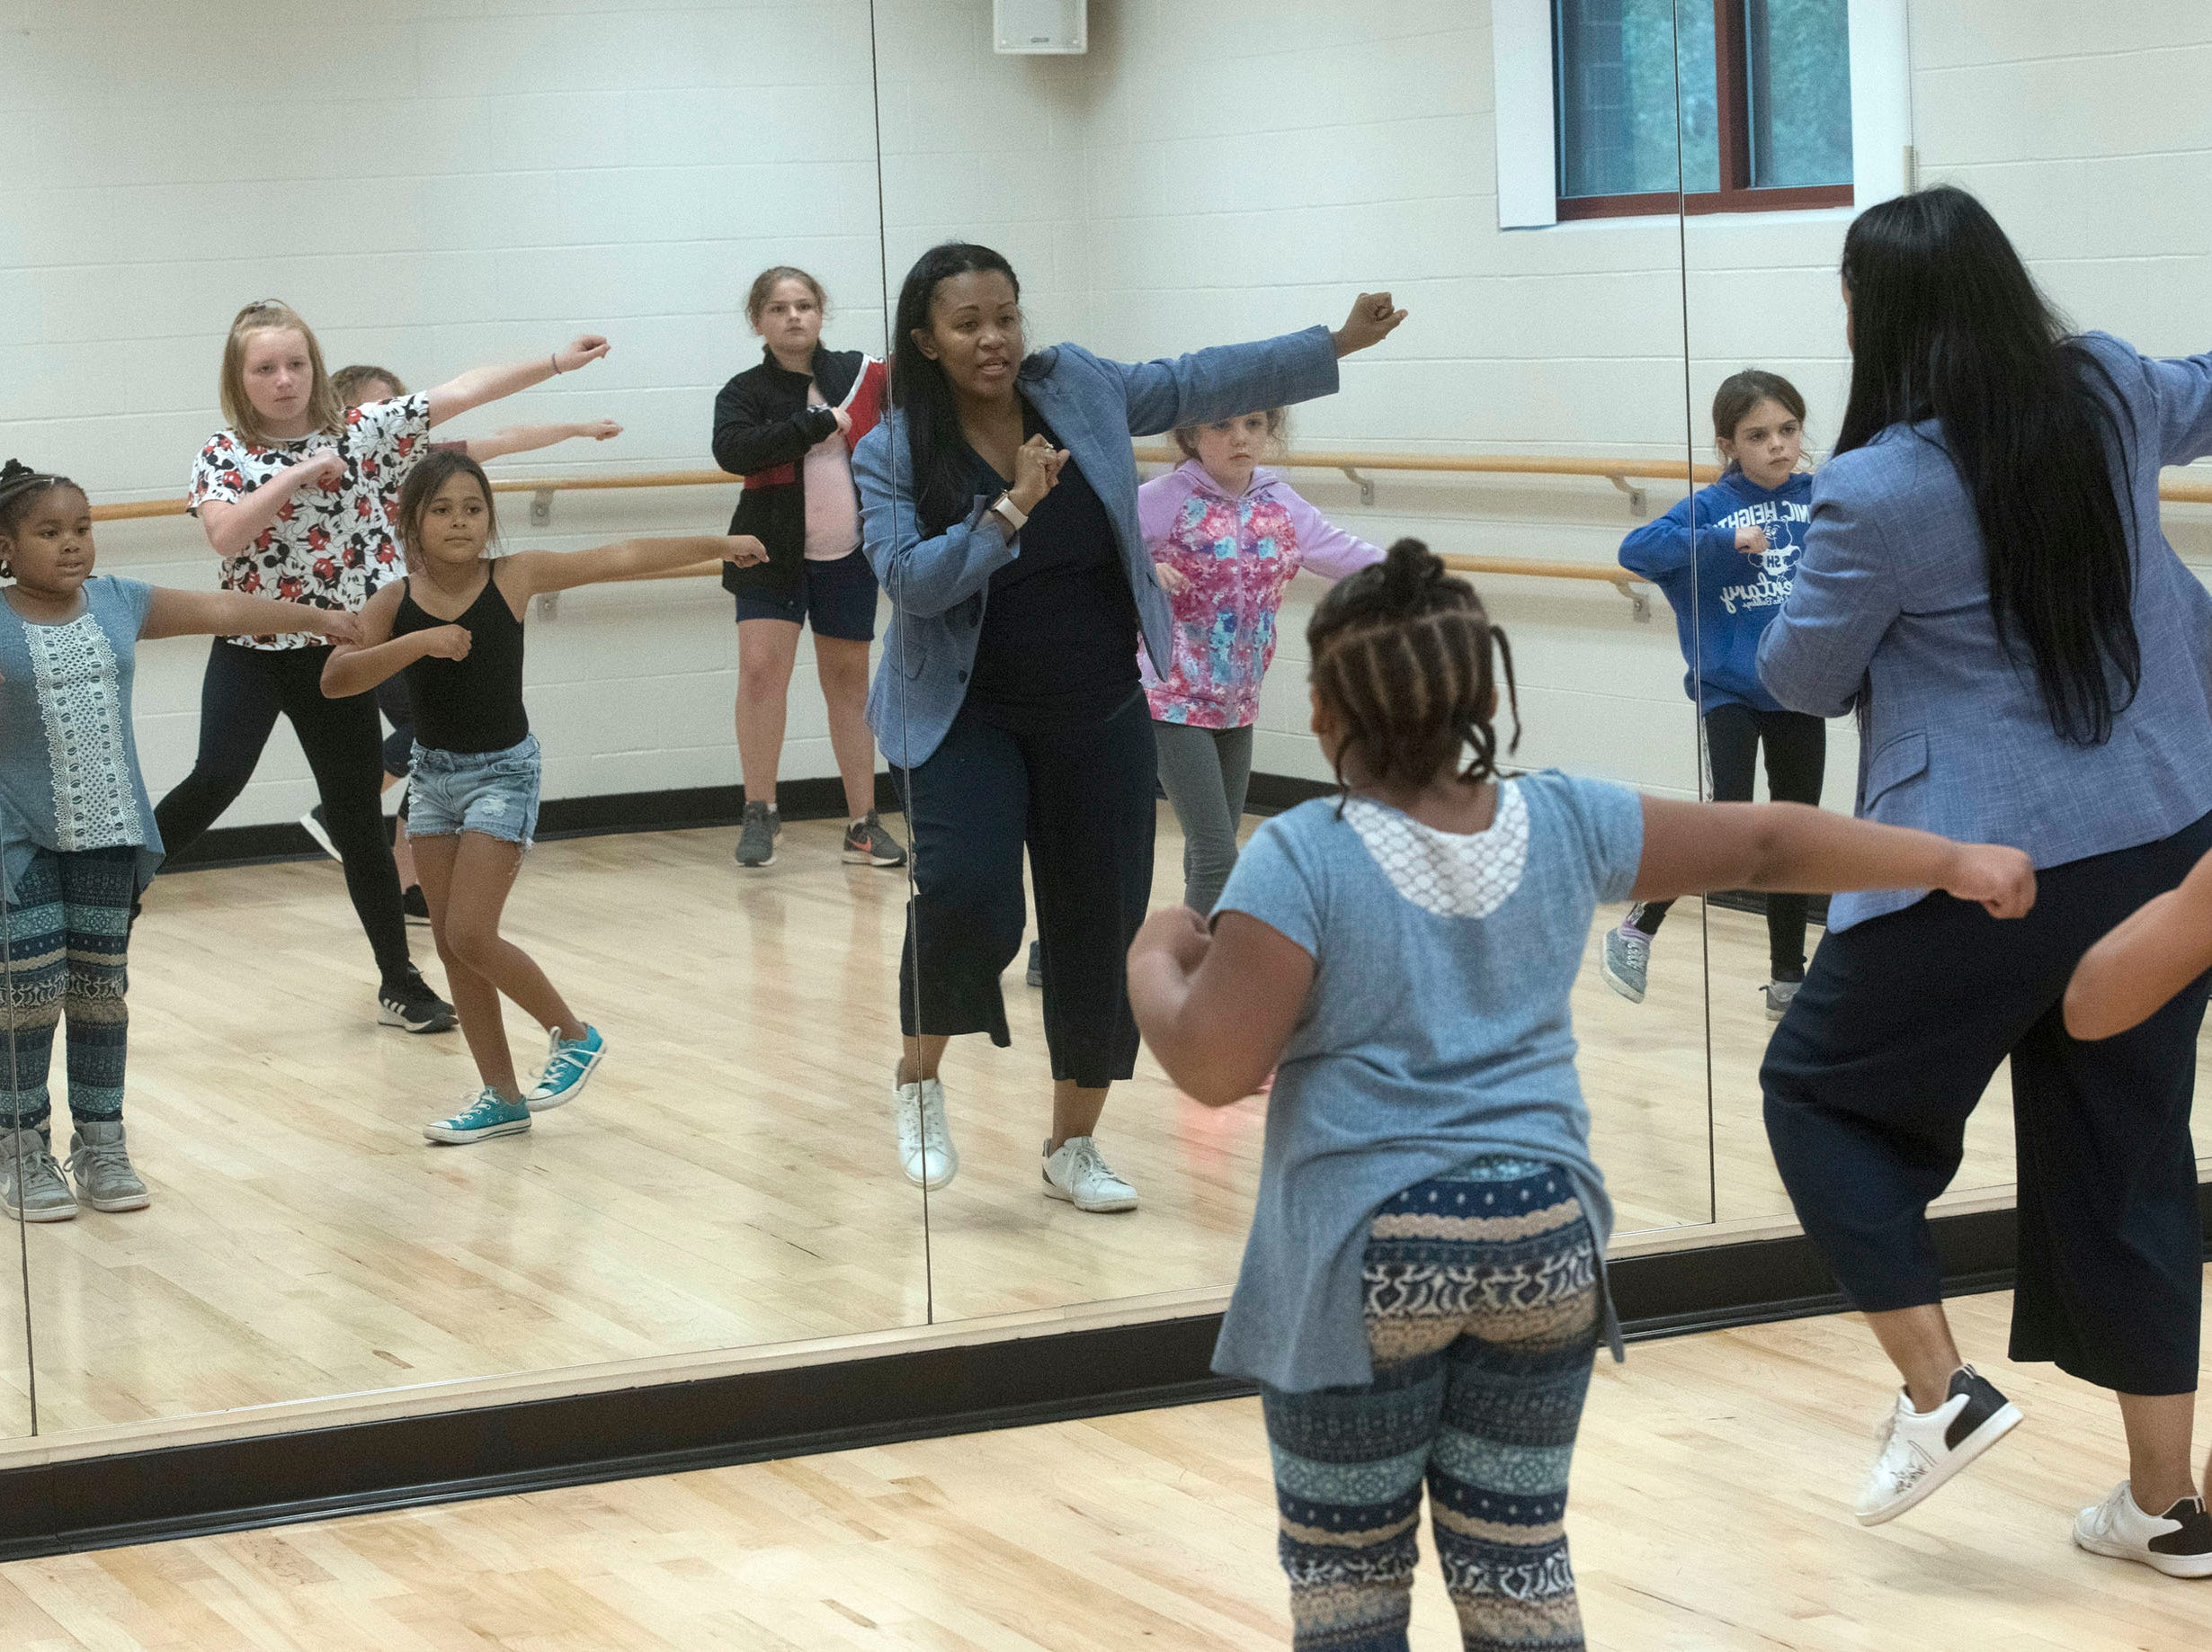 Joy Gainer teachs a group of kids a few hip hop dance moves during a class at the Gull Point Community Center on Spanish Trail on Wednesday, March 13, 2019.